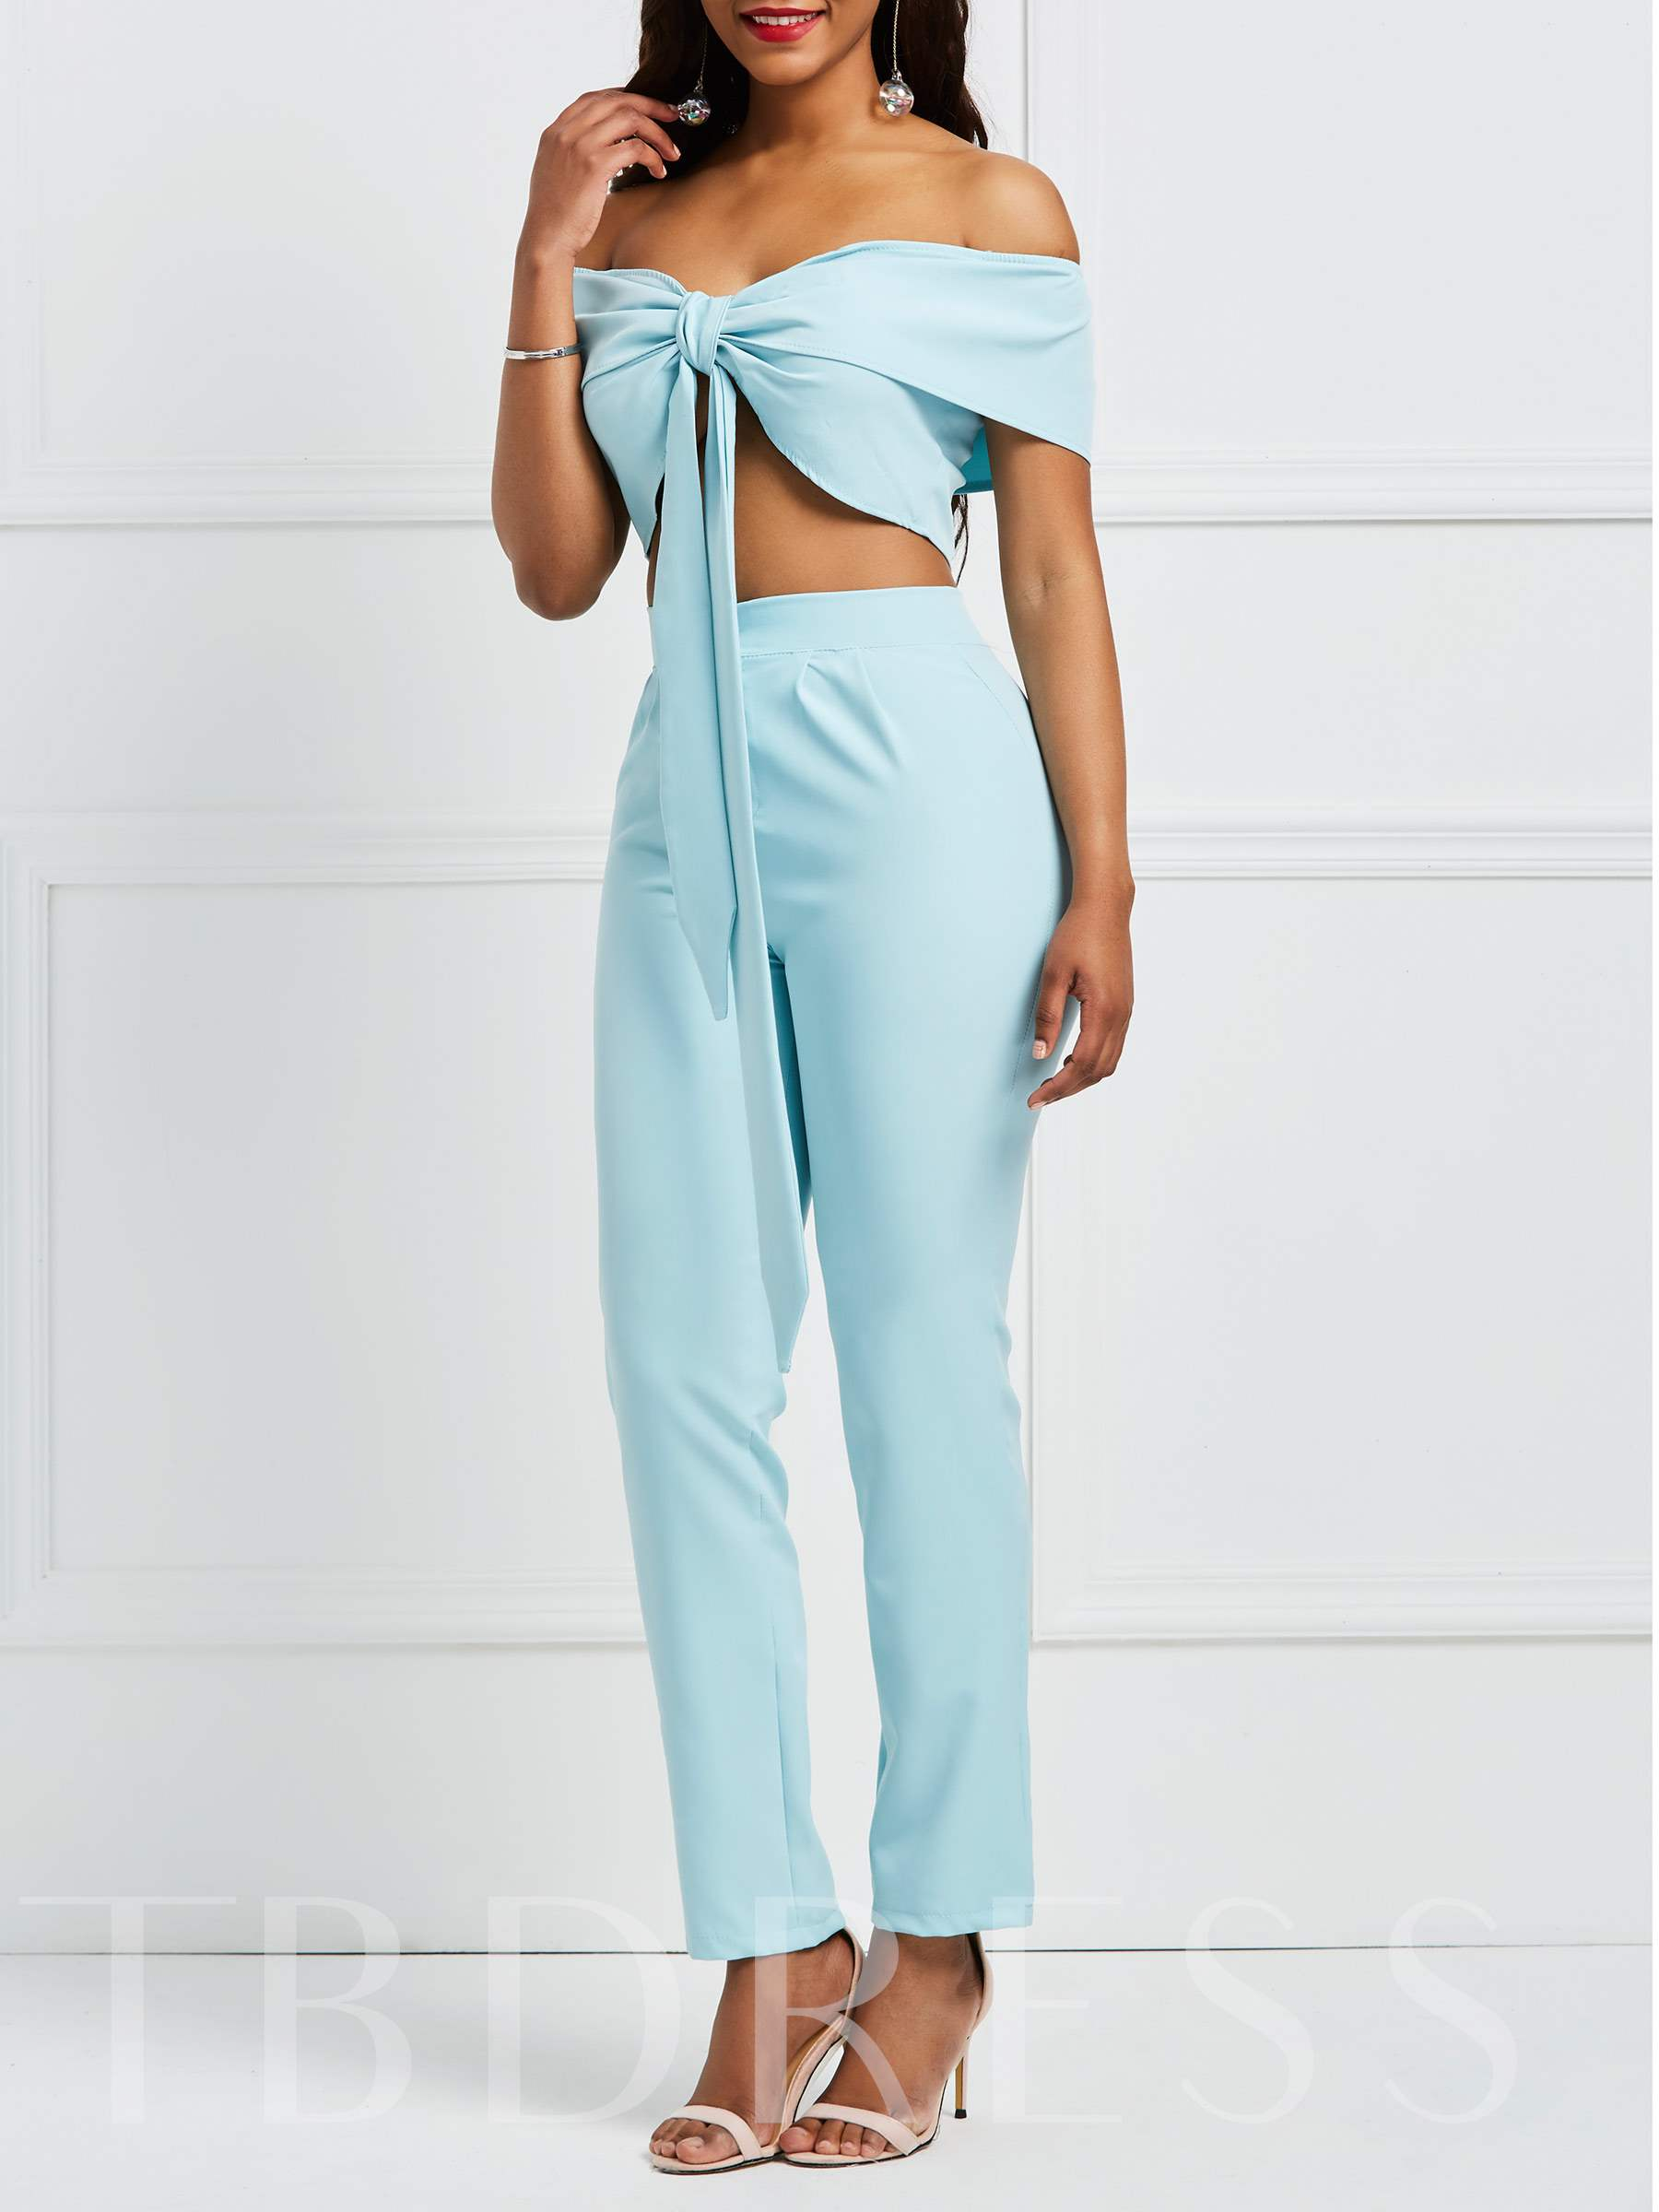 Buy Lake Blue Off Shouder Tie Front Crop Top with Pants Women's Two Piece Set, 13331045 for $14.71 in TBDress store